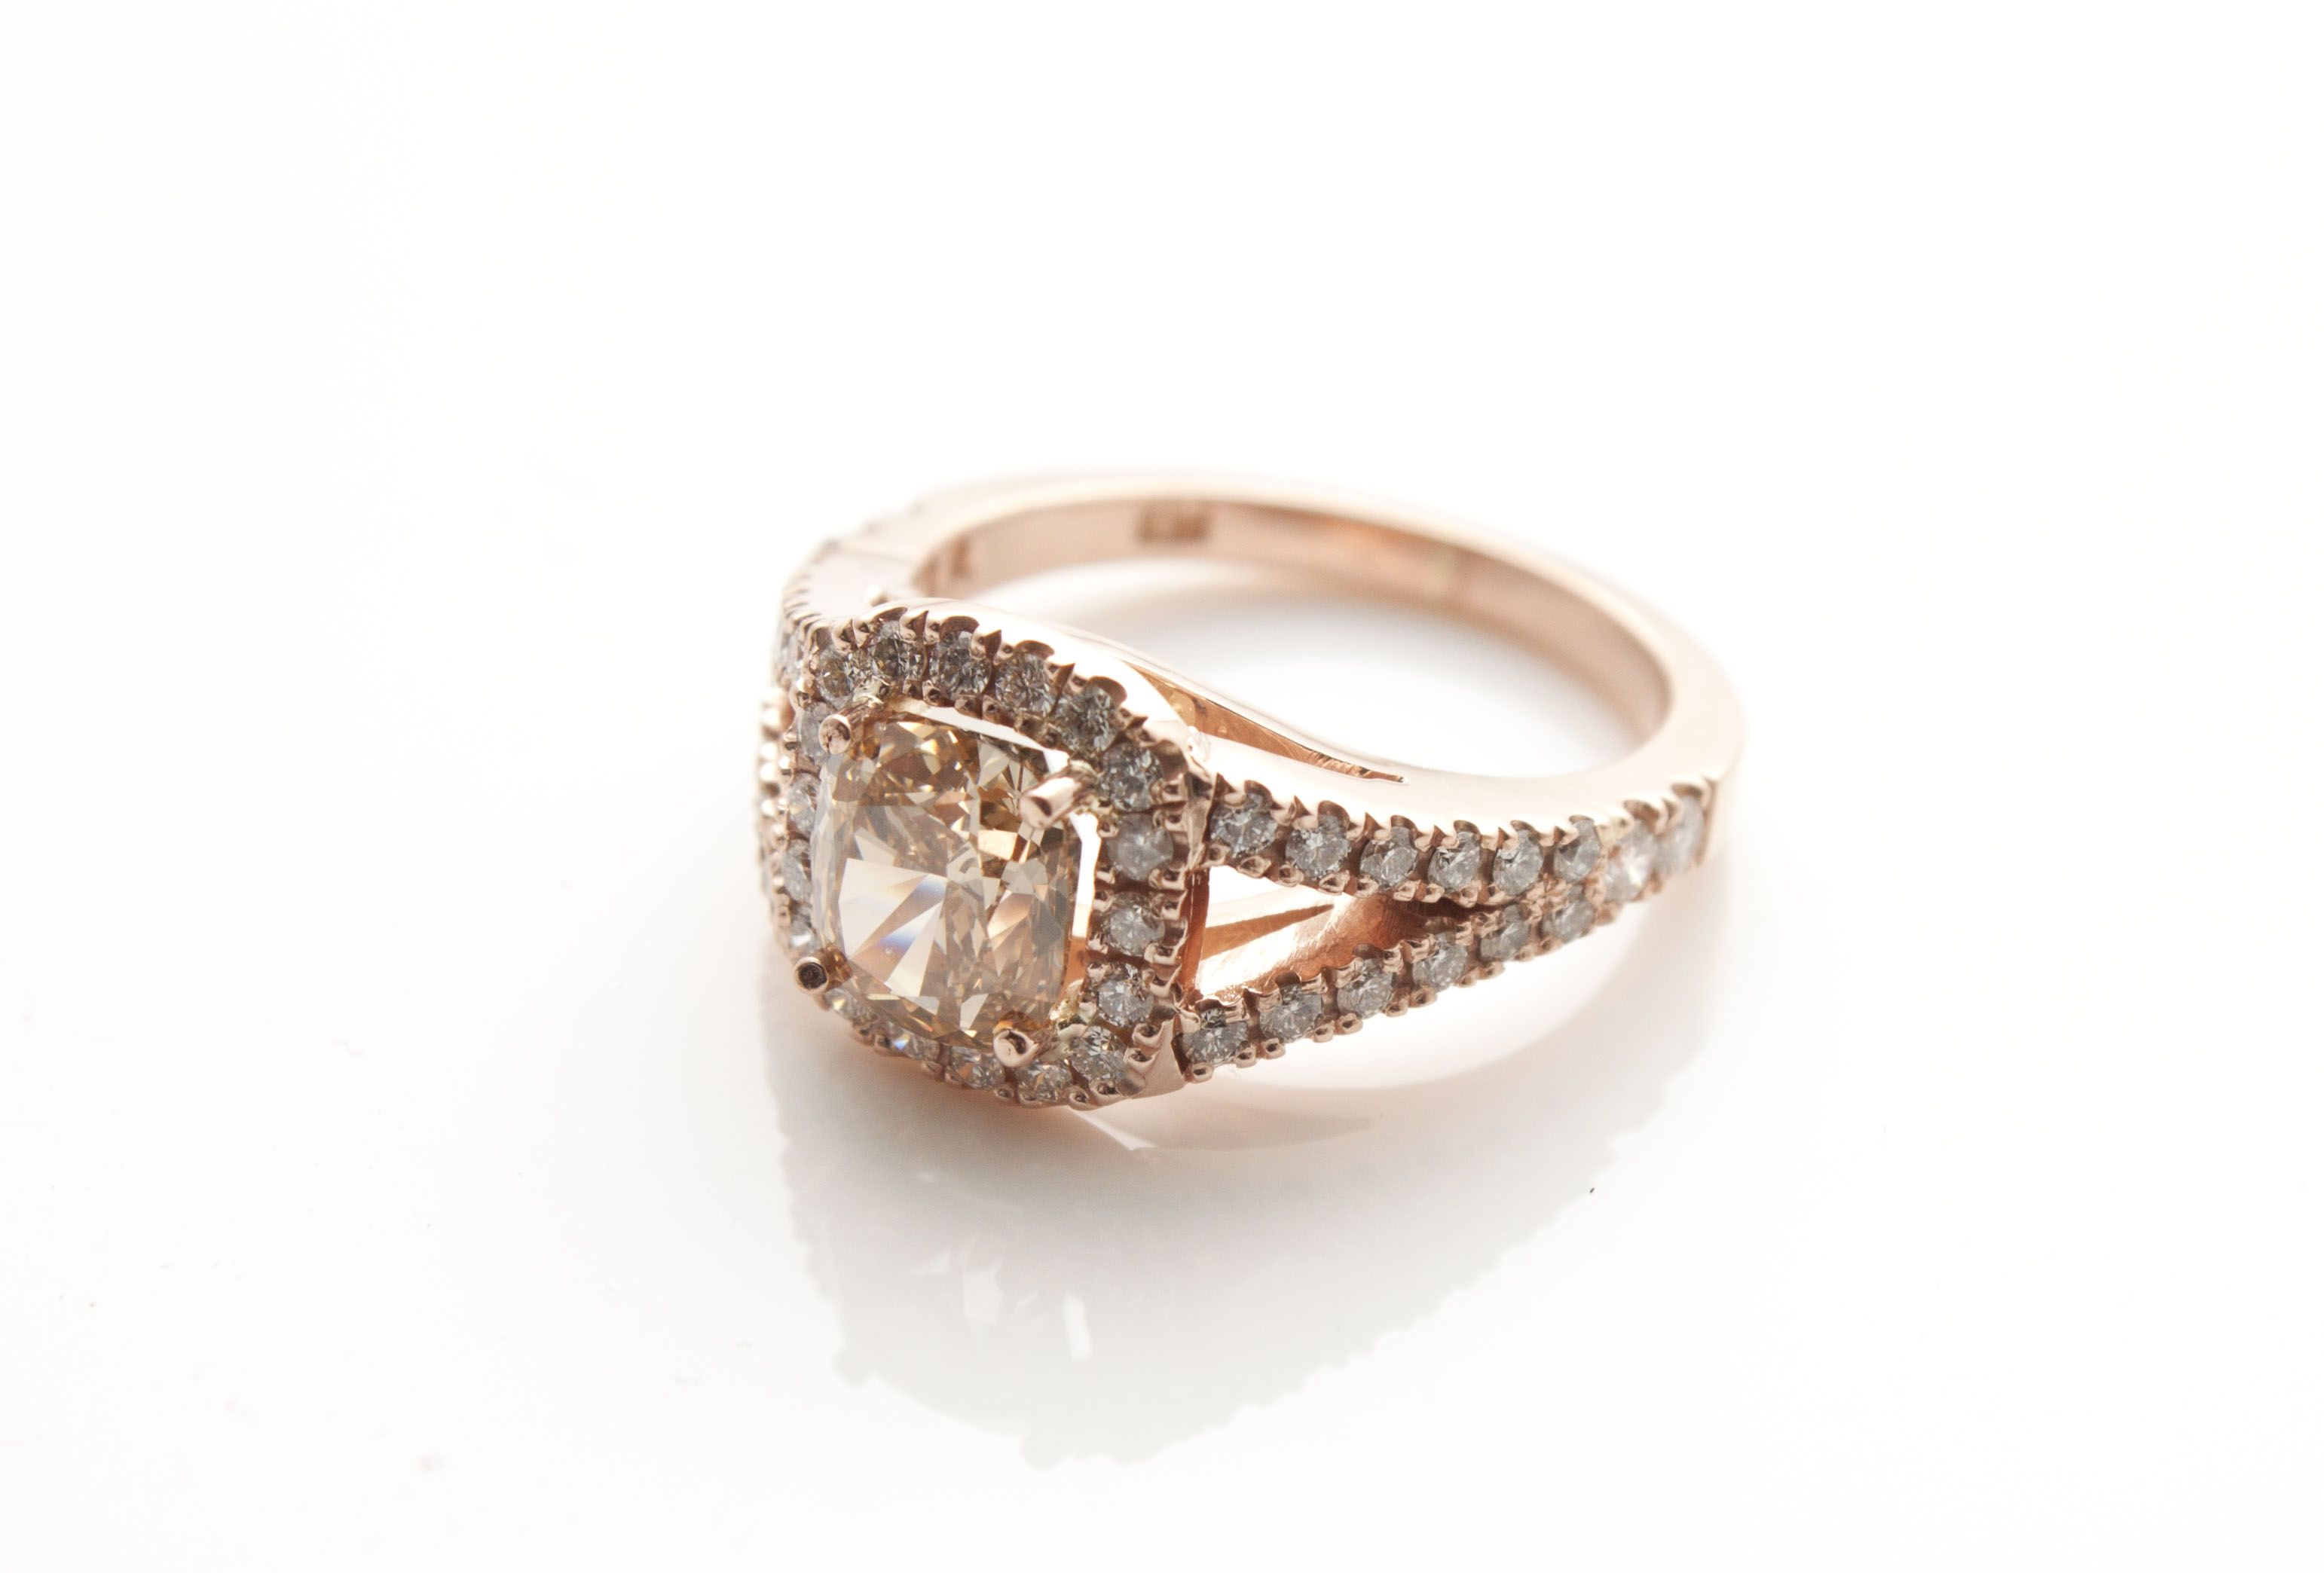 rocket rings johnny engagement ct brushed jewellery white ring jrj brilliant cut stones gold diamond side ladies